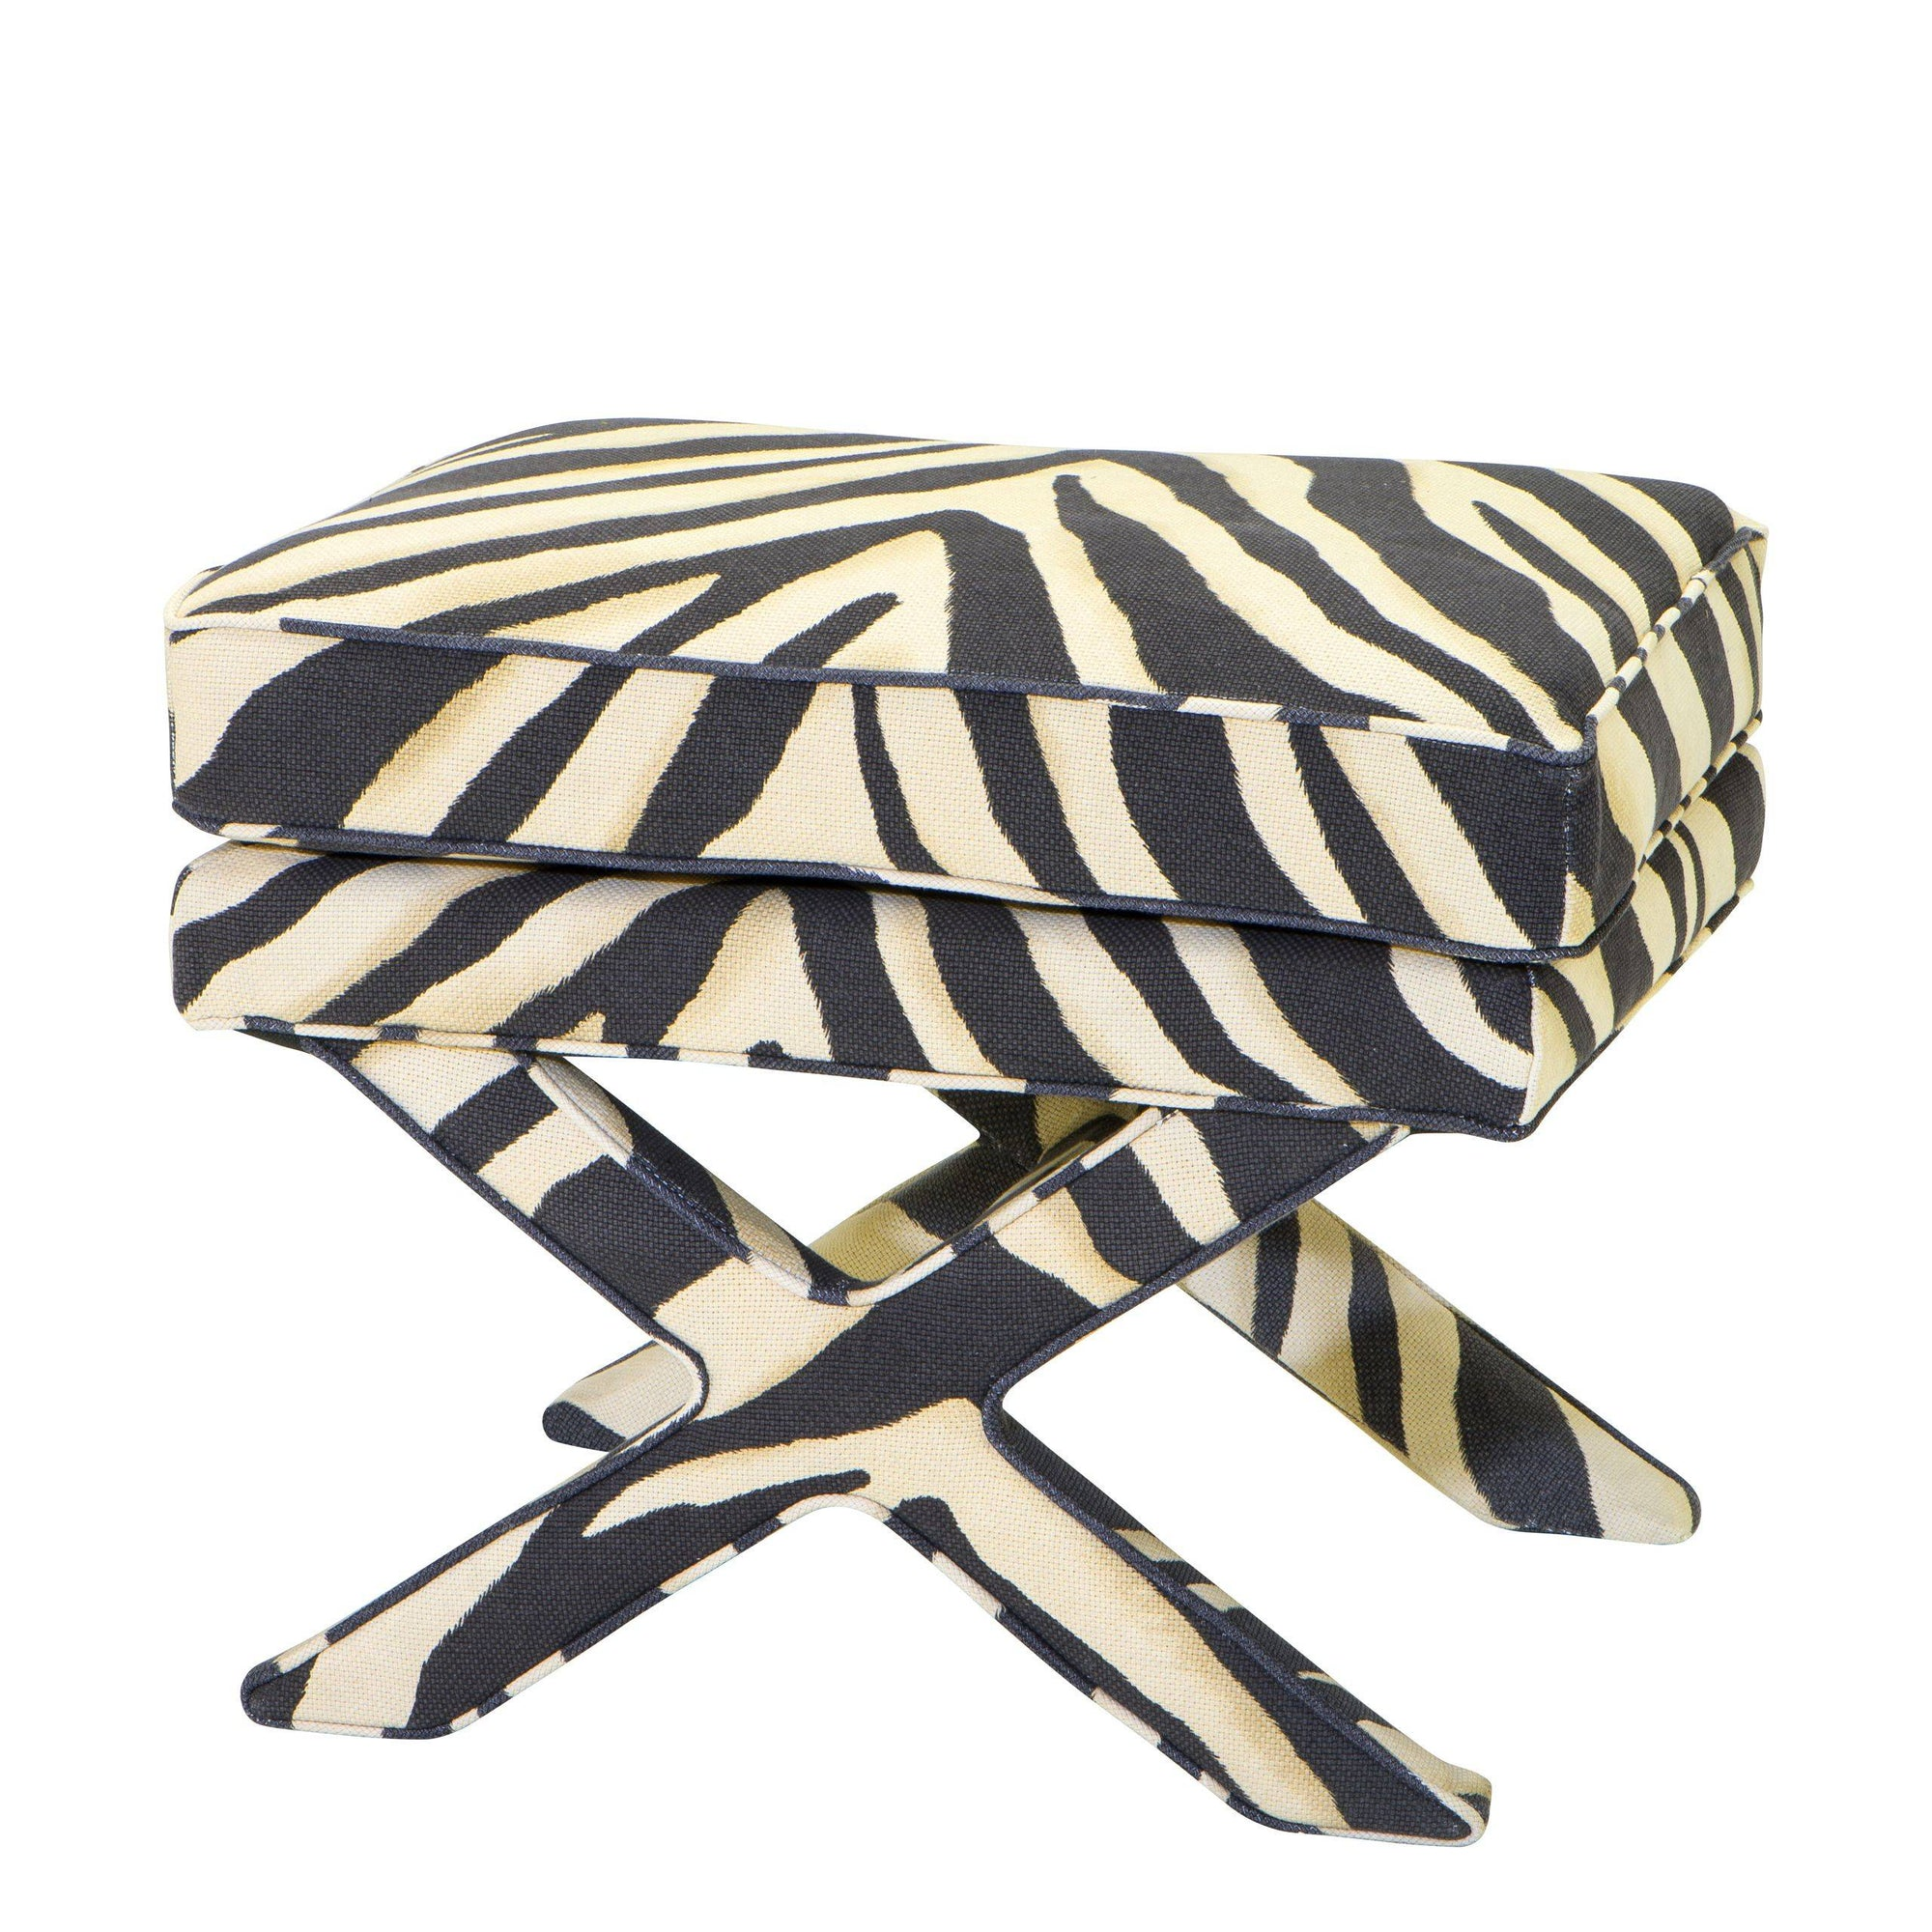 Zebra Print X-Leg Stool | Eichholtz Cordoba | OROA Luxury Furniture